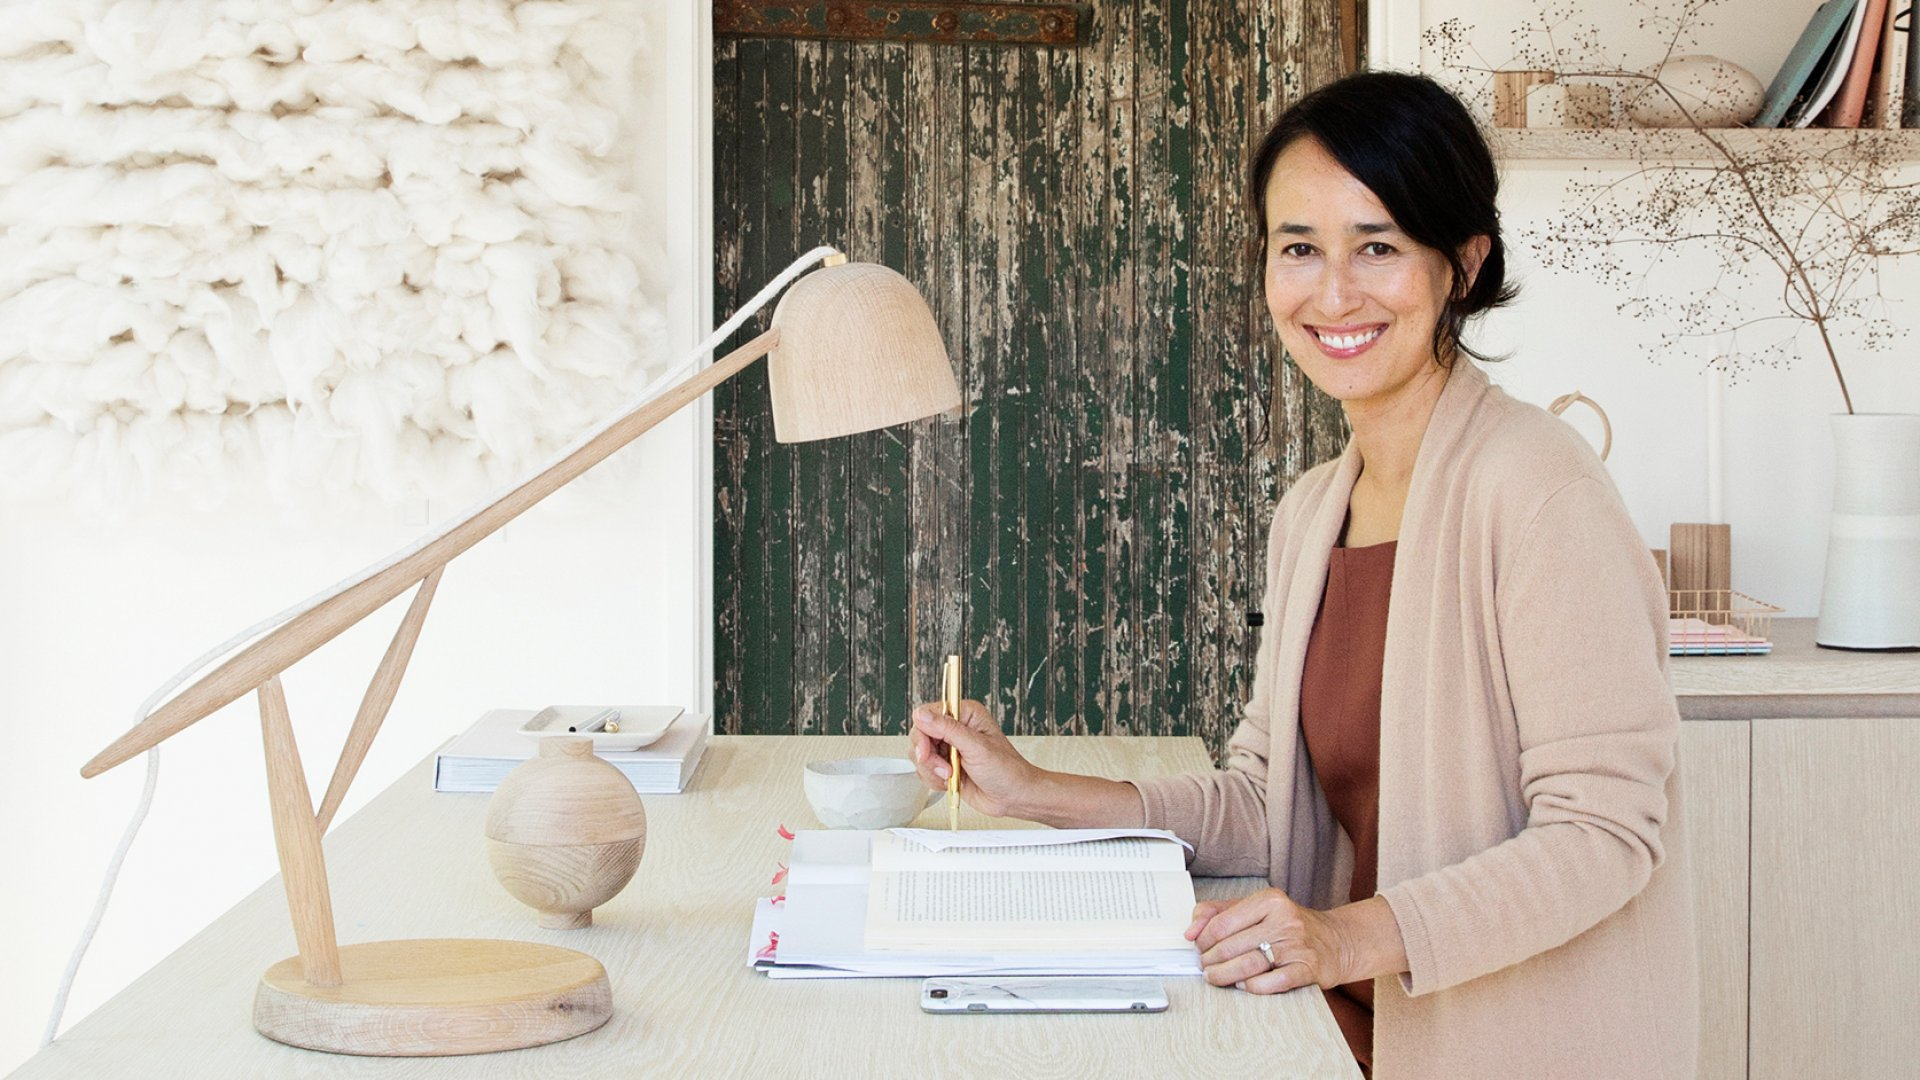 Founder and CEO of Minted, Mariam Naficy